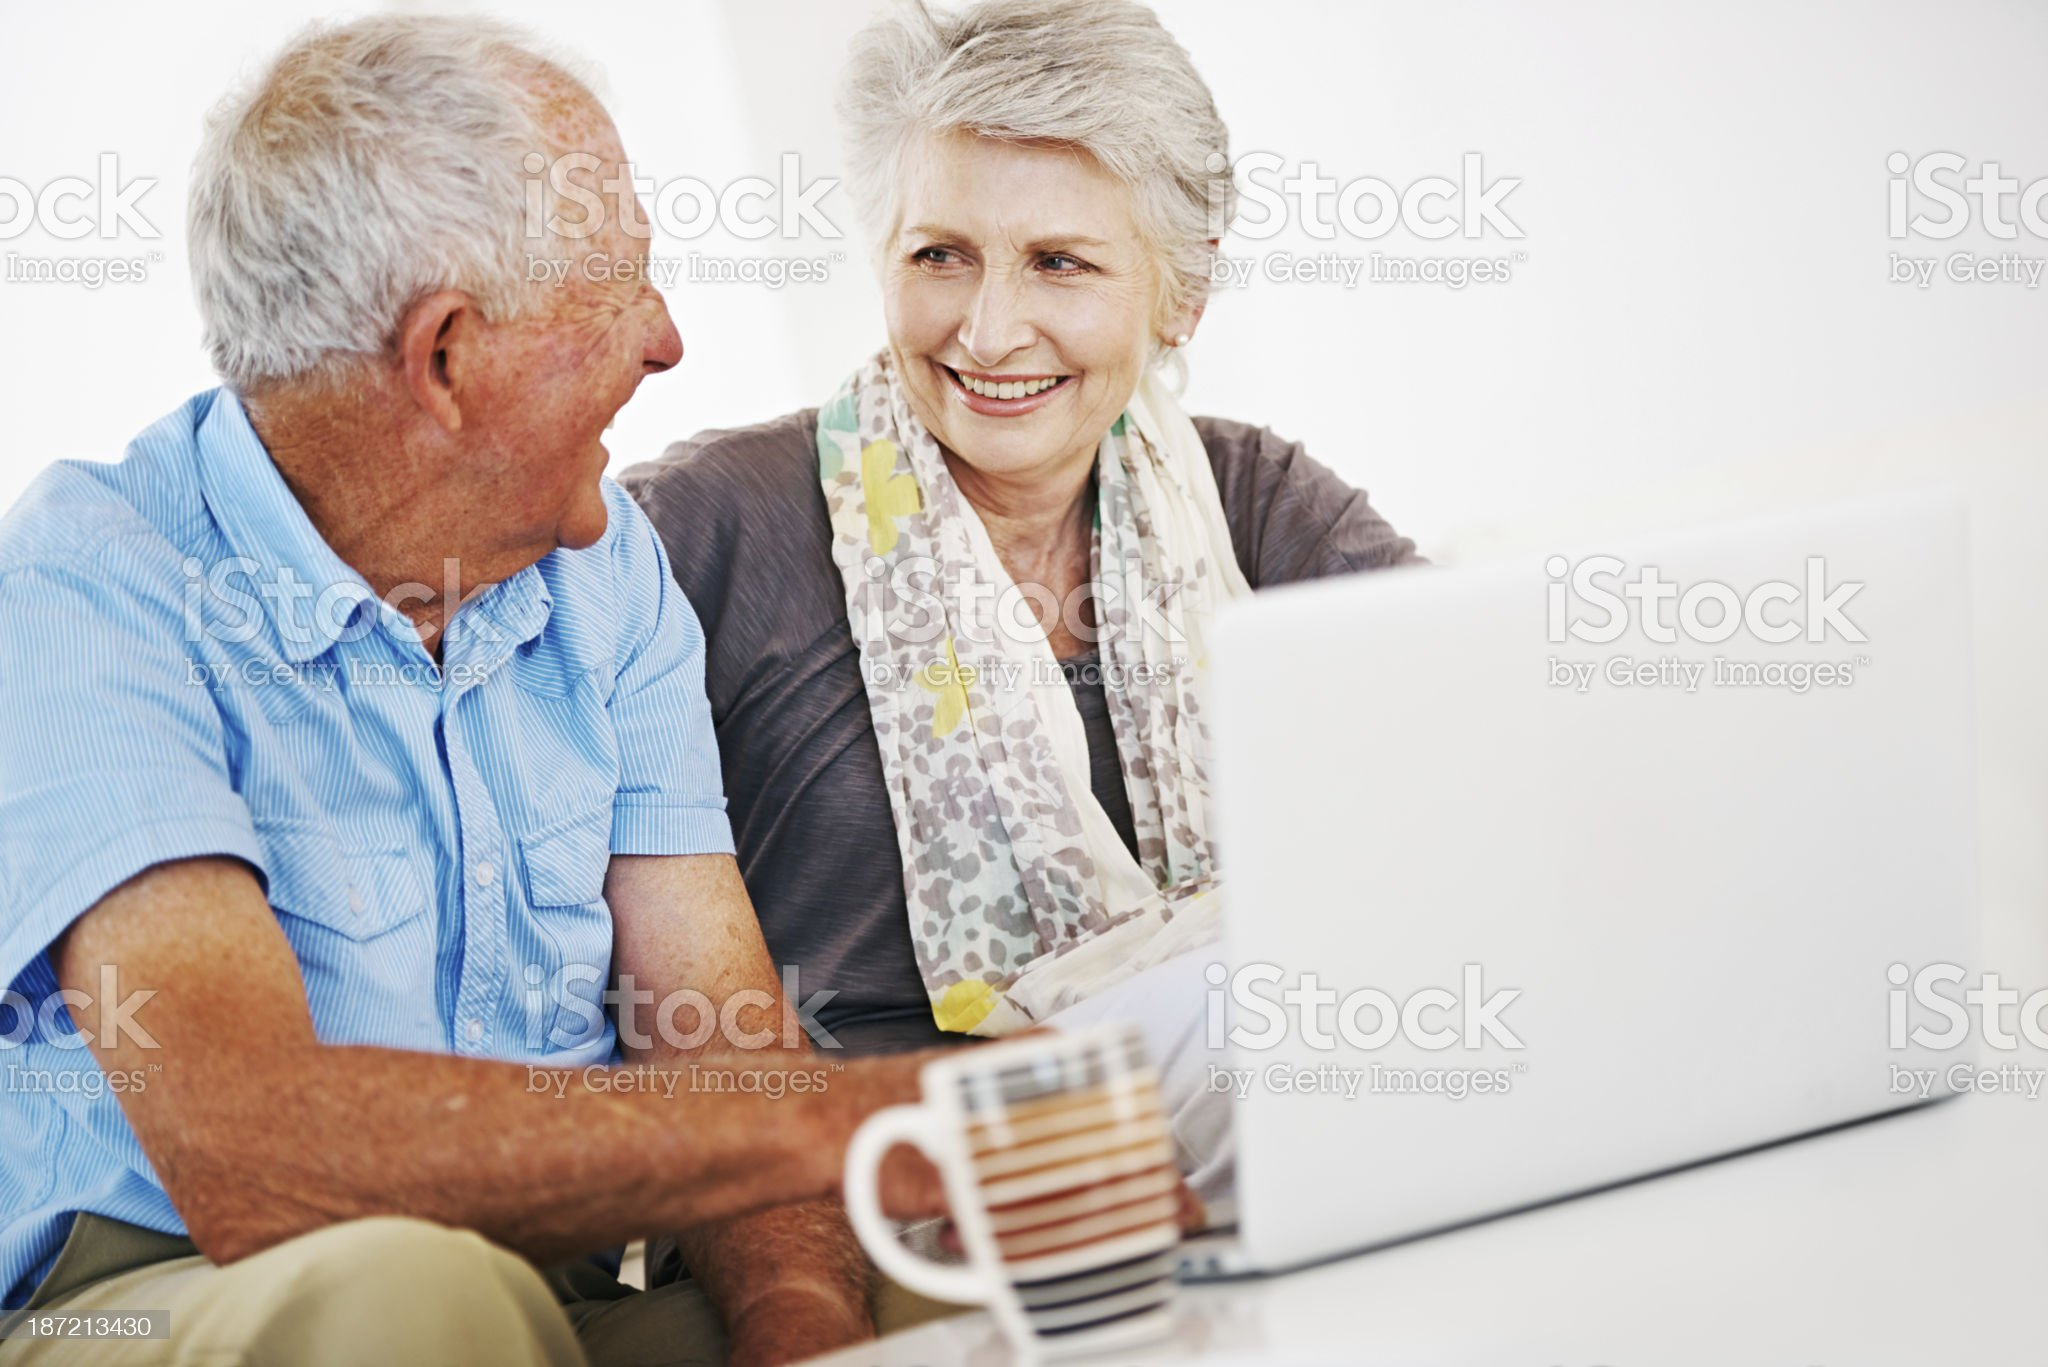 Getting their budget together royalty-free stock photo